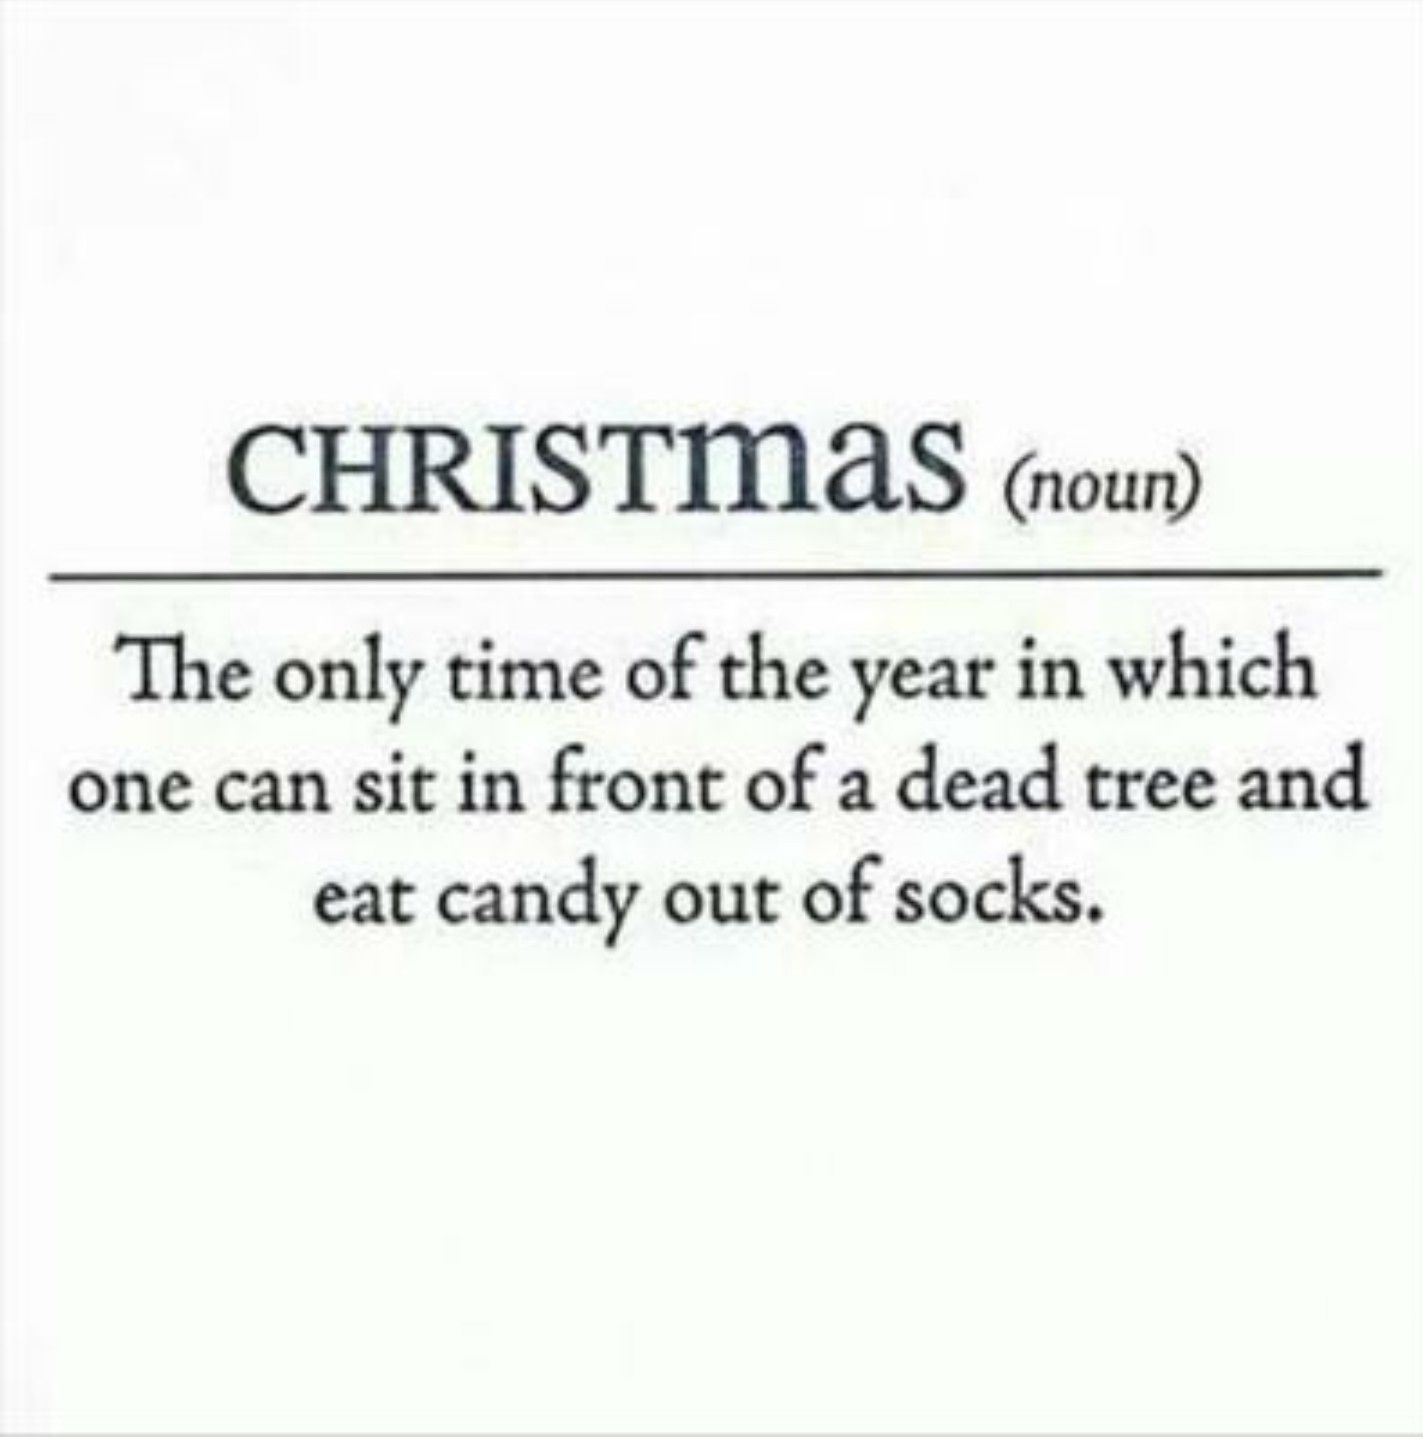 Pin By Tony Gibbons On Funny Pinterest Captions Christmas